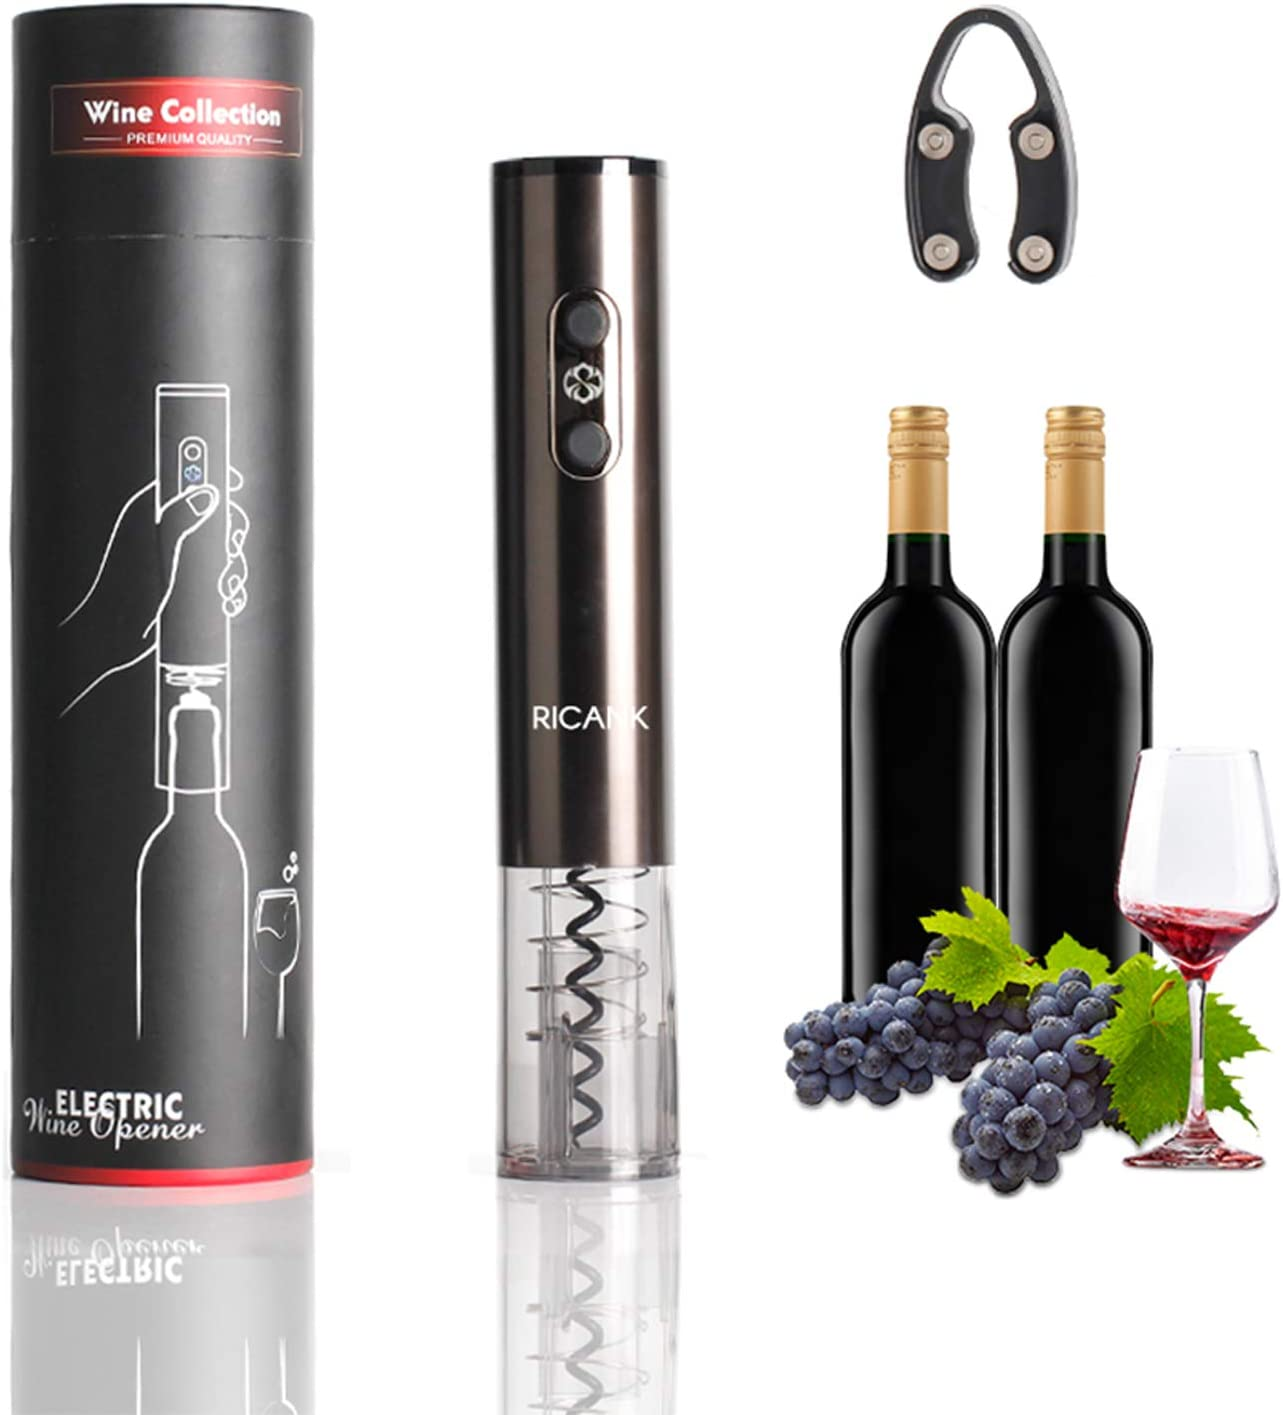 RICANK Electric Wine Opener, Automatic Electric Wine Bottle Corkscrew Opener with Wine Foil Cutter and USB Charging Cable, Rechargeable Cordless Automatic Corkscrew Set One Touch Wine Bottle Opener